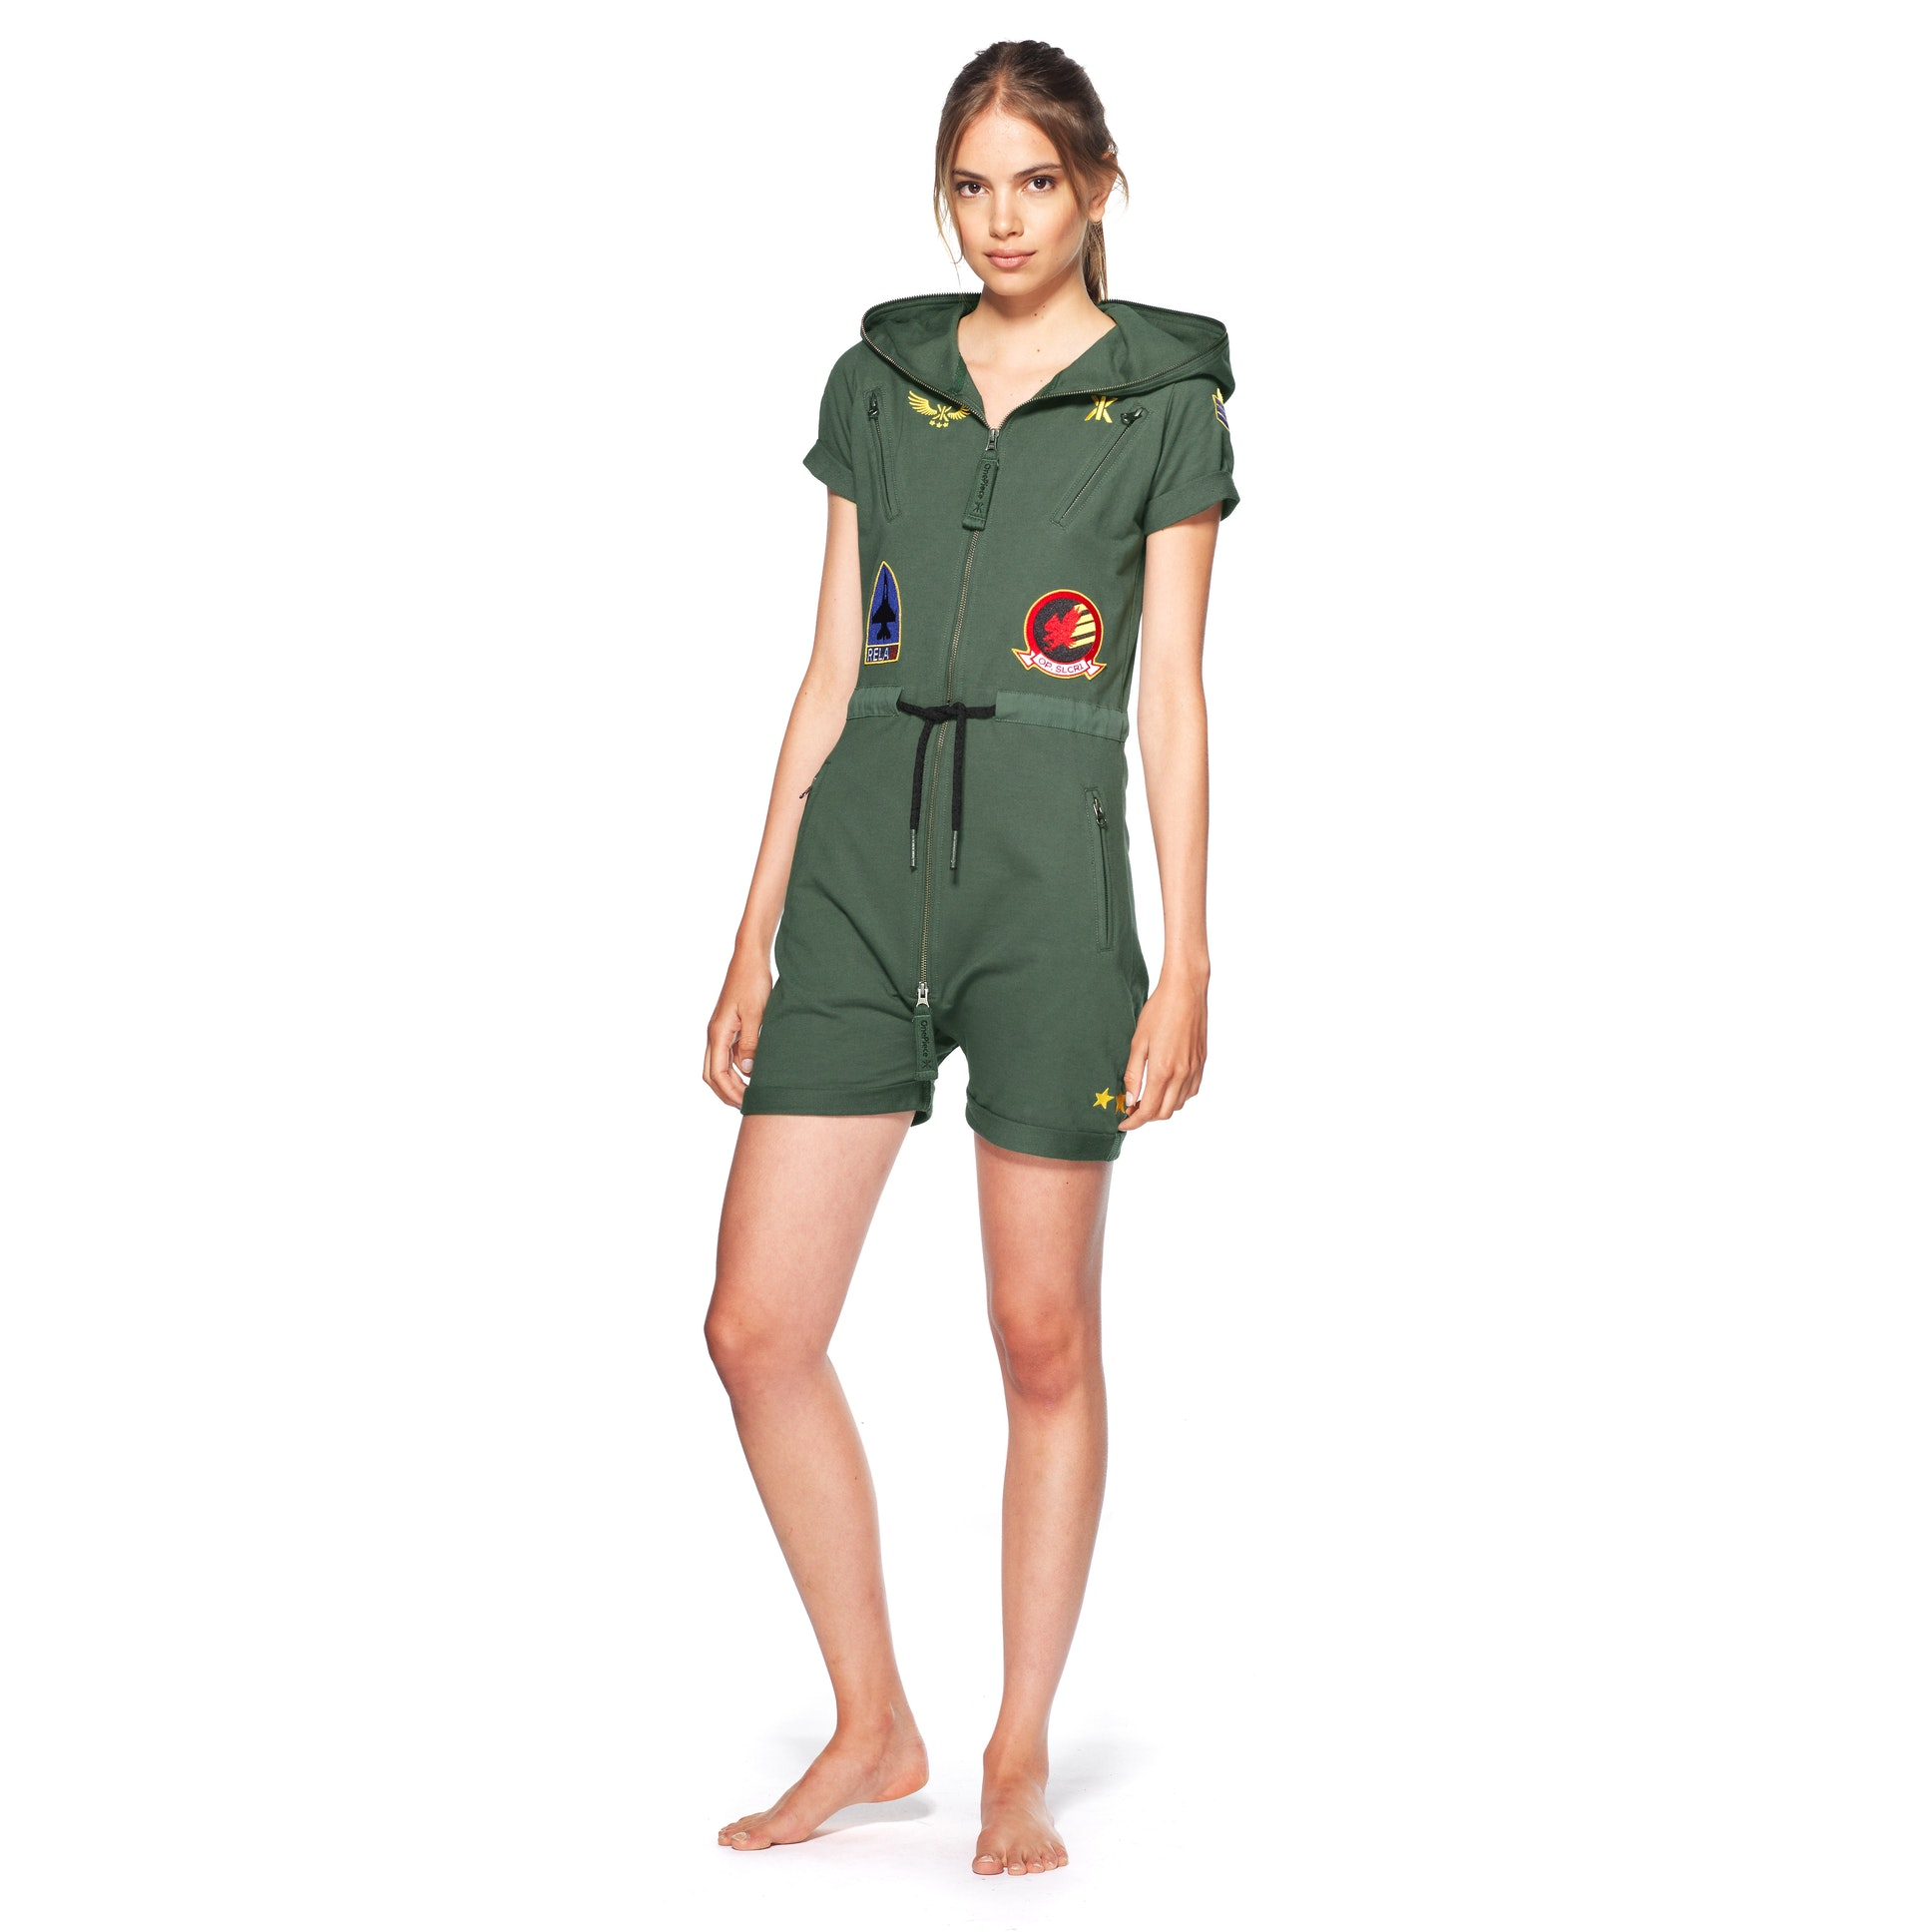 925eaddfaf aviator-fitted-short-jumpsuit-jungle-green-1 .jpg w 1936 h 1936 fit fill bg FFFFFF q 75